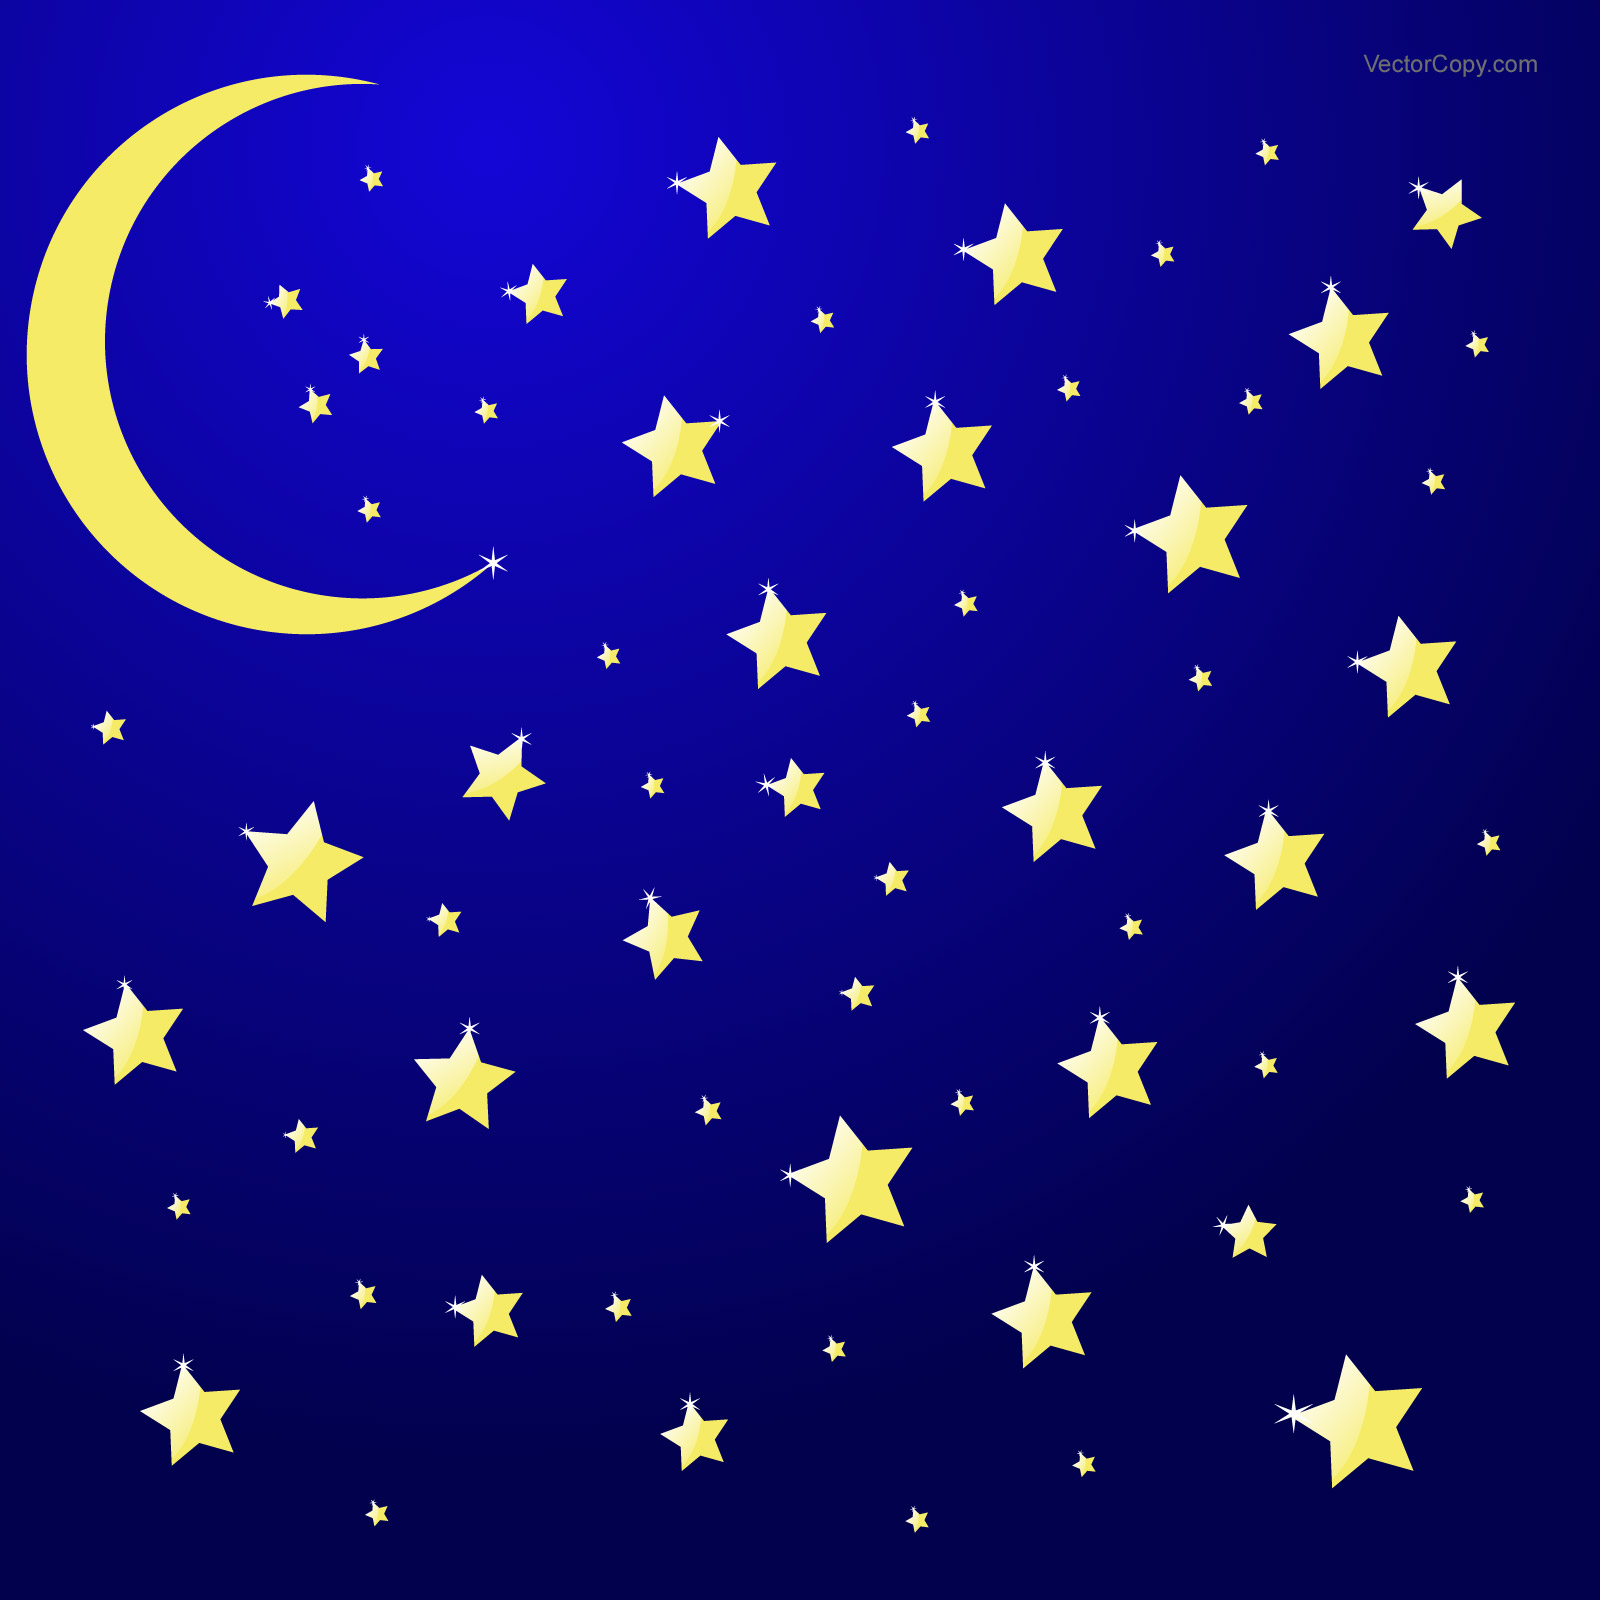 Free download Night sky with moon and stars vector eps by.